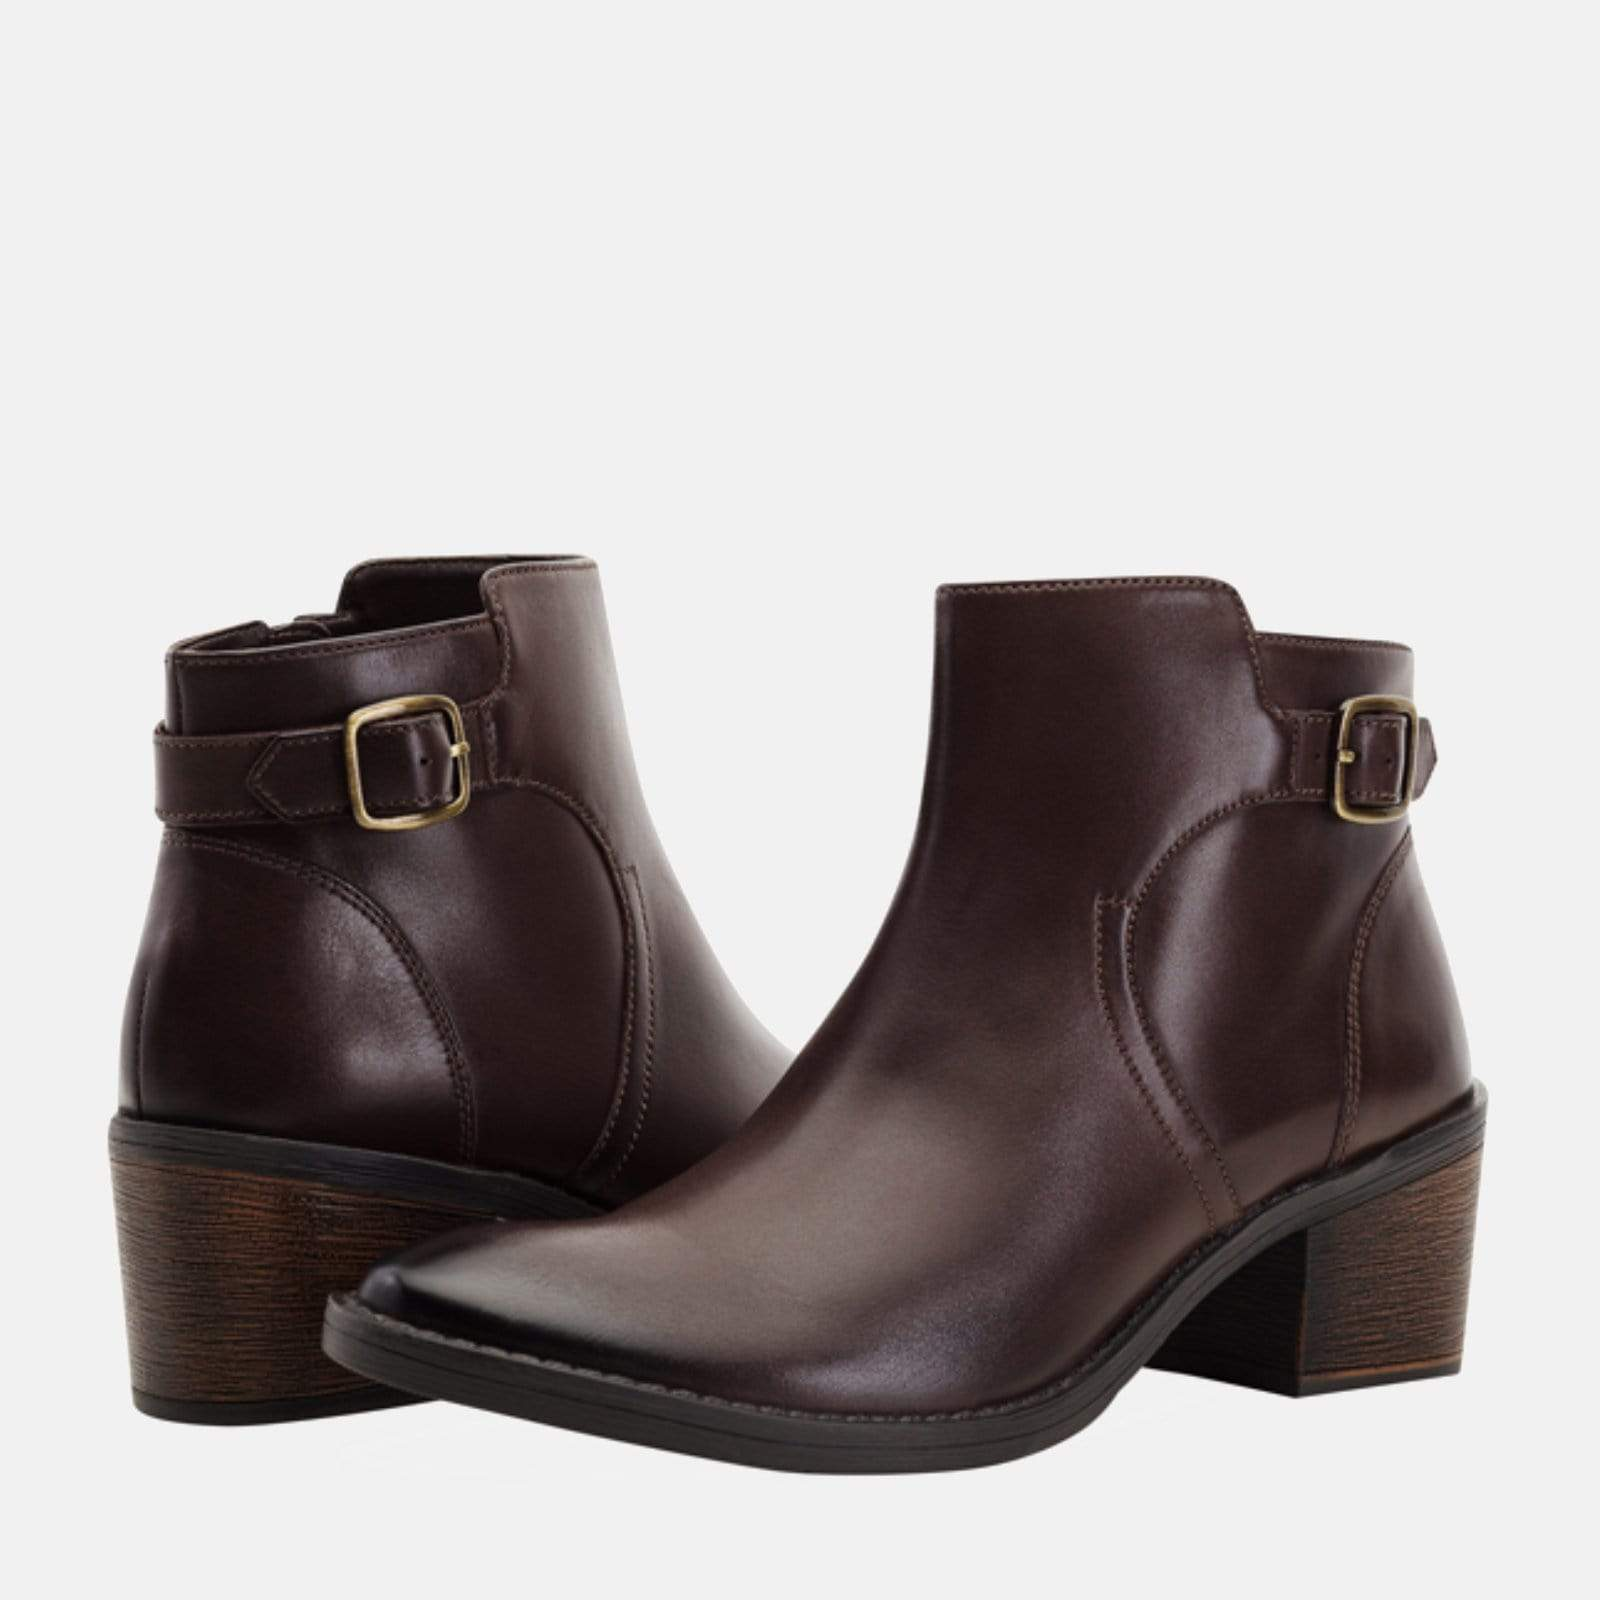 ALBA BROWN LEATHER BUCKLE ANKLE BOOTS